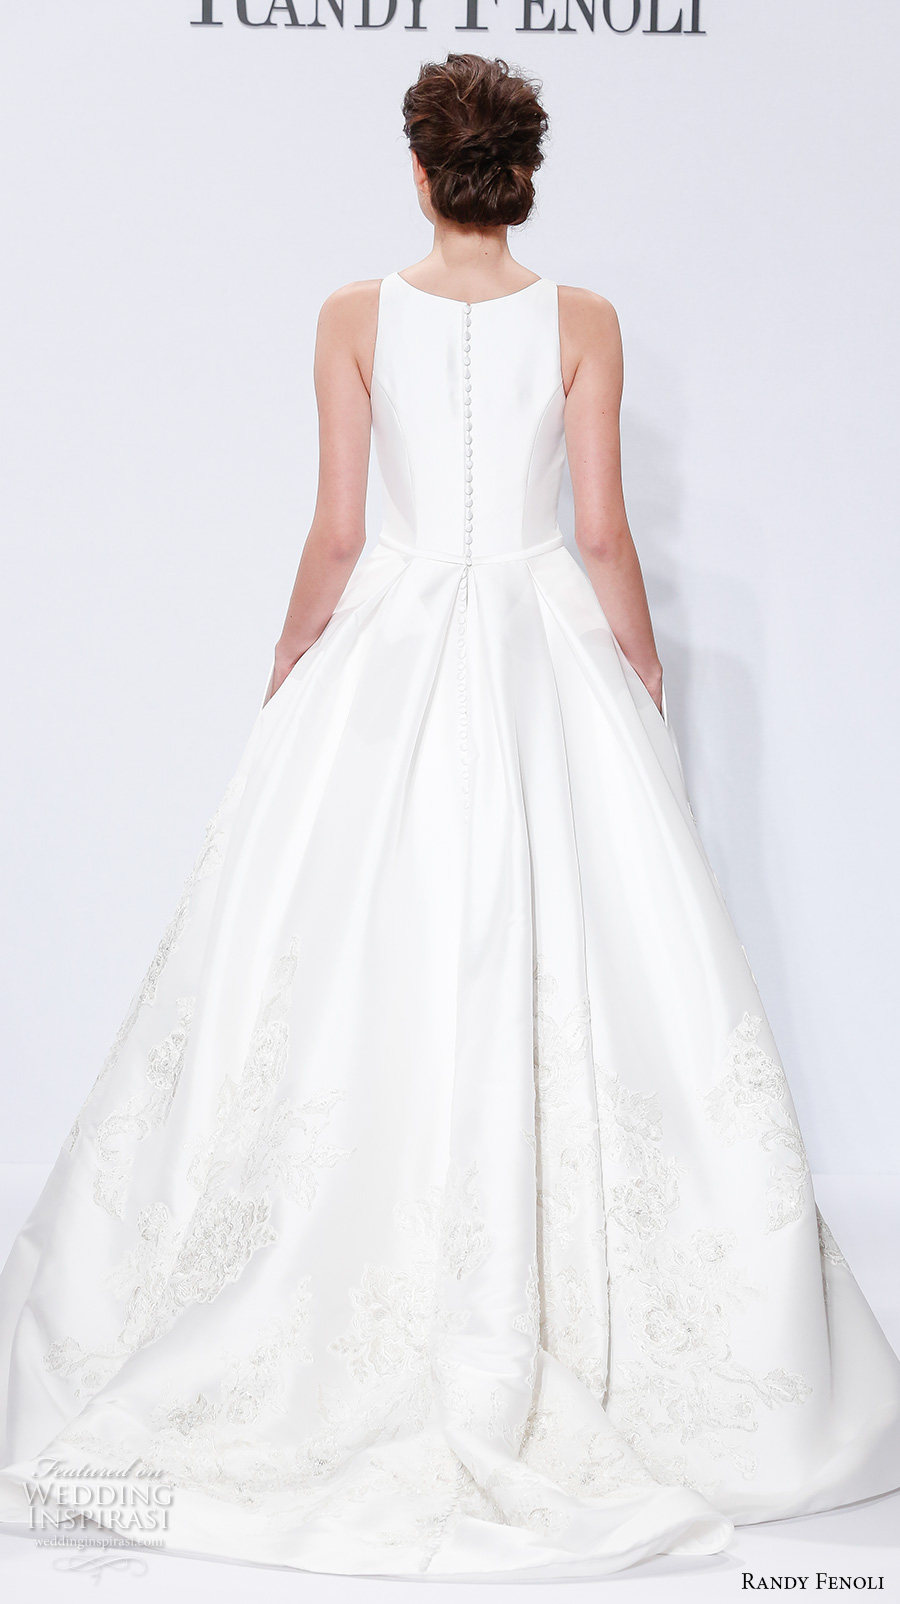 randy fenoli spring 2018 bridal sleeveless jewel neck simple clean embellished hem elegant a  line wedding dress with pockets covered back sweep train (06) bv